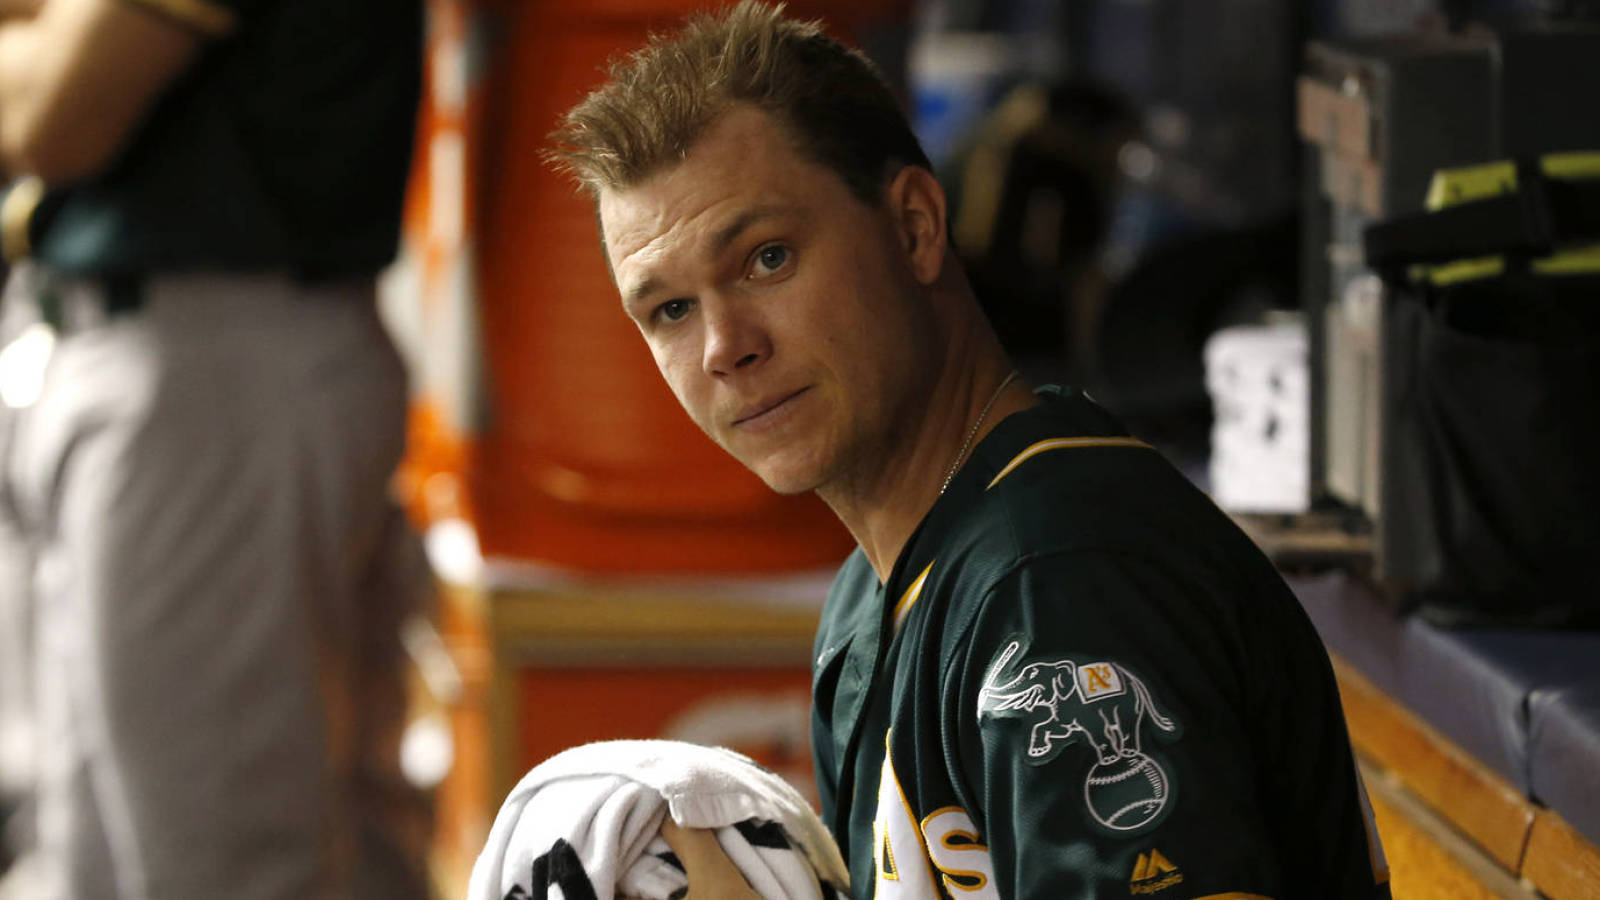 Report cubs still interested in sonny gray for Knights landing fishing report